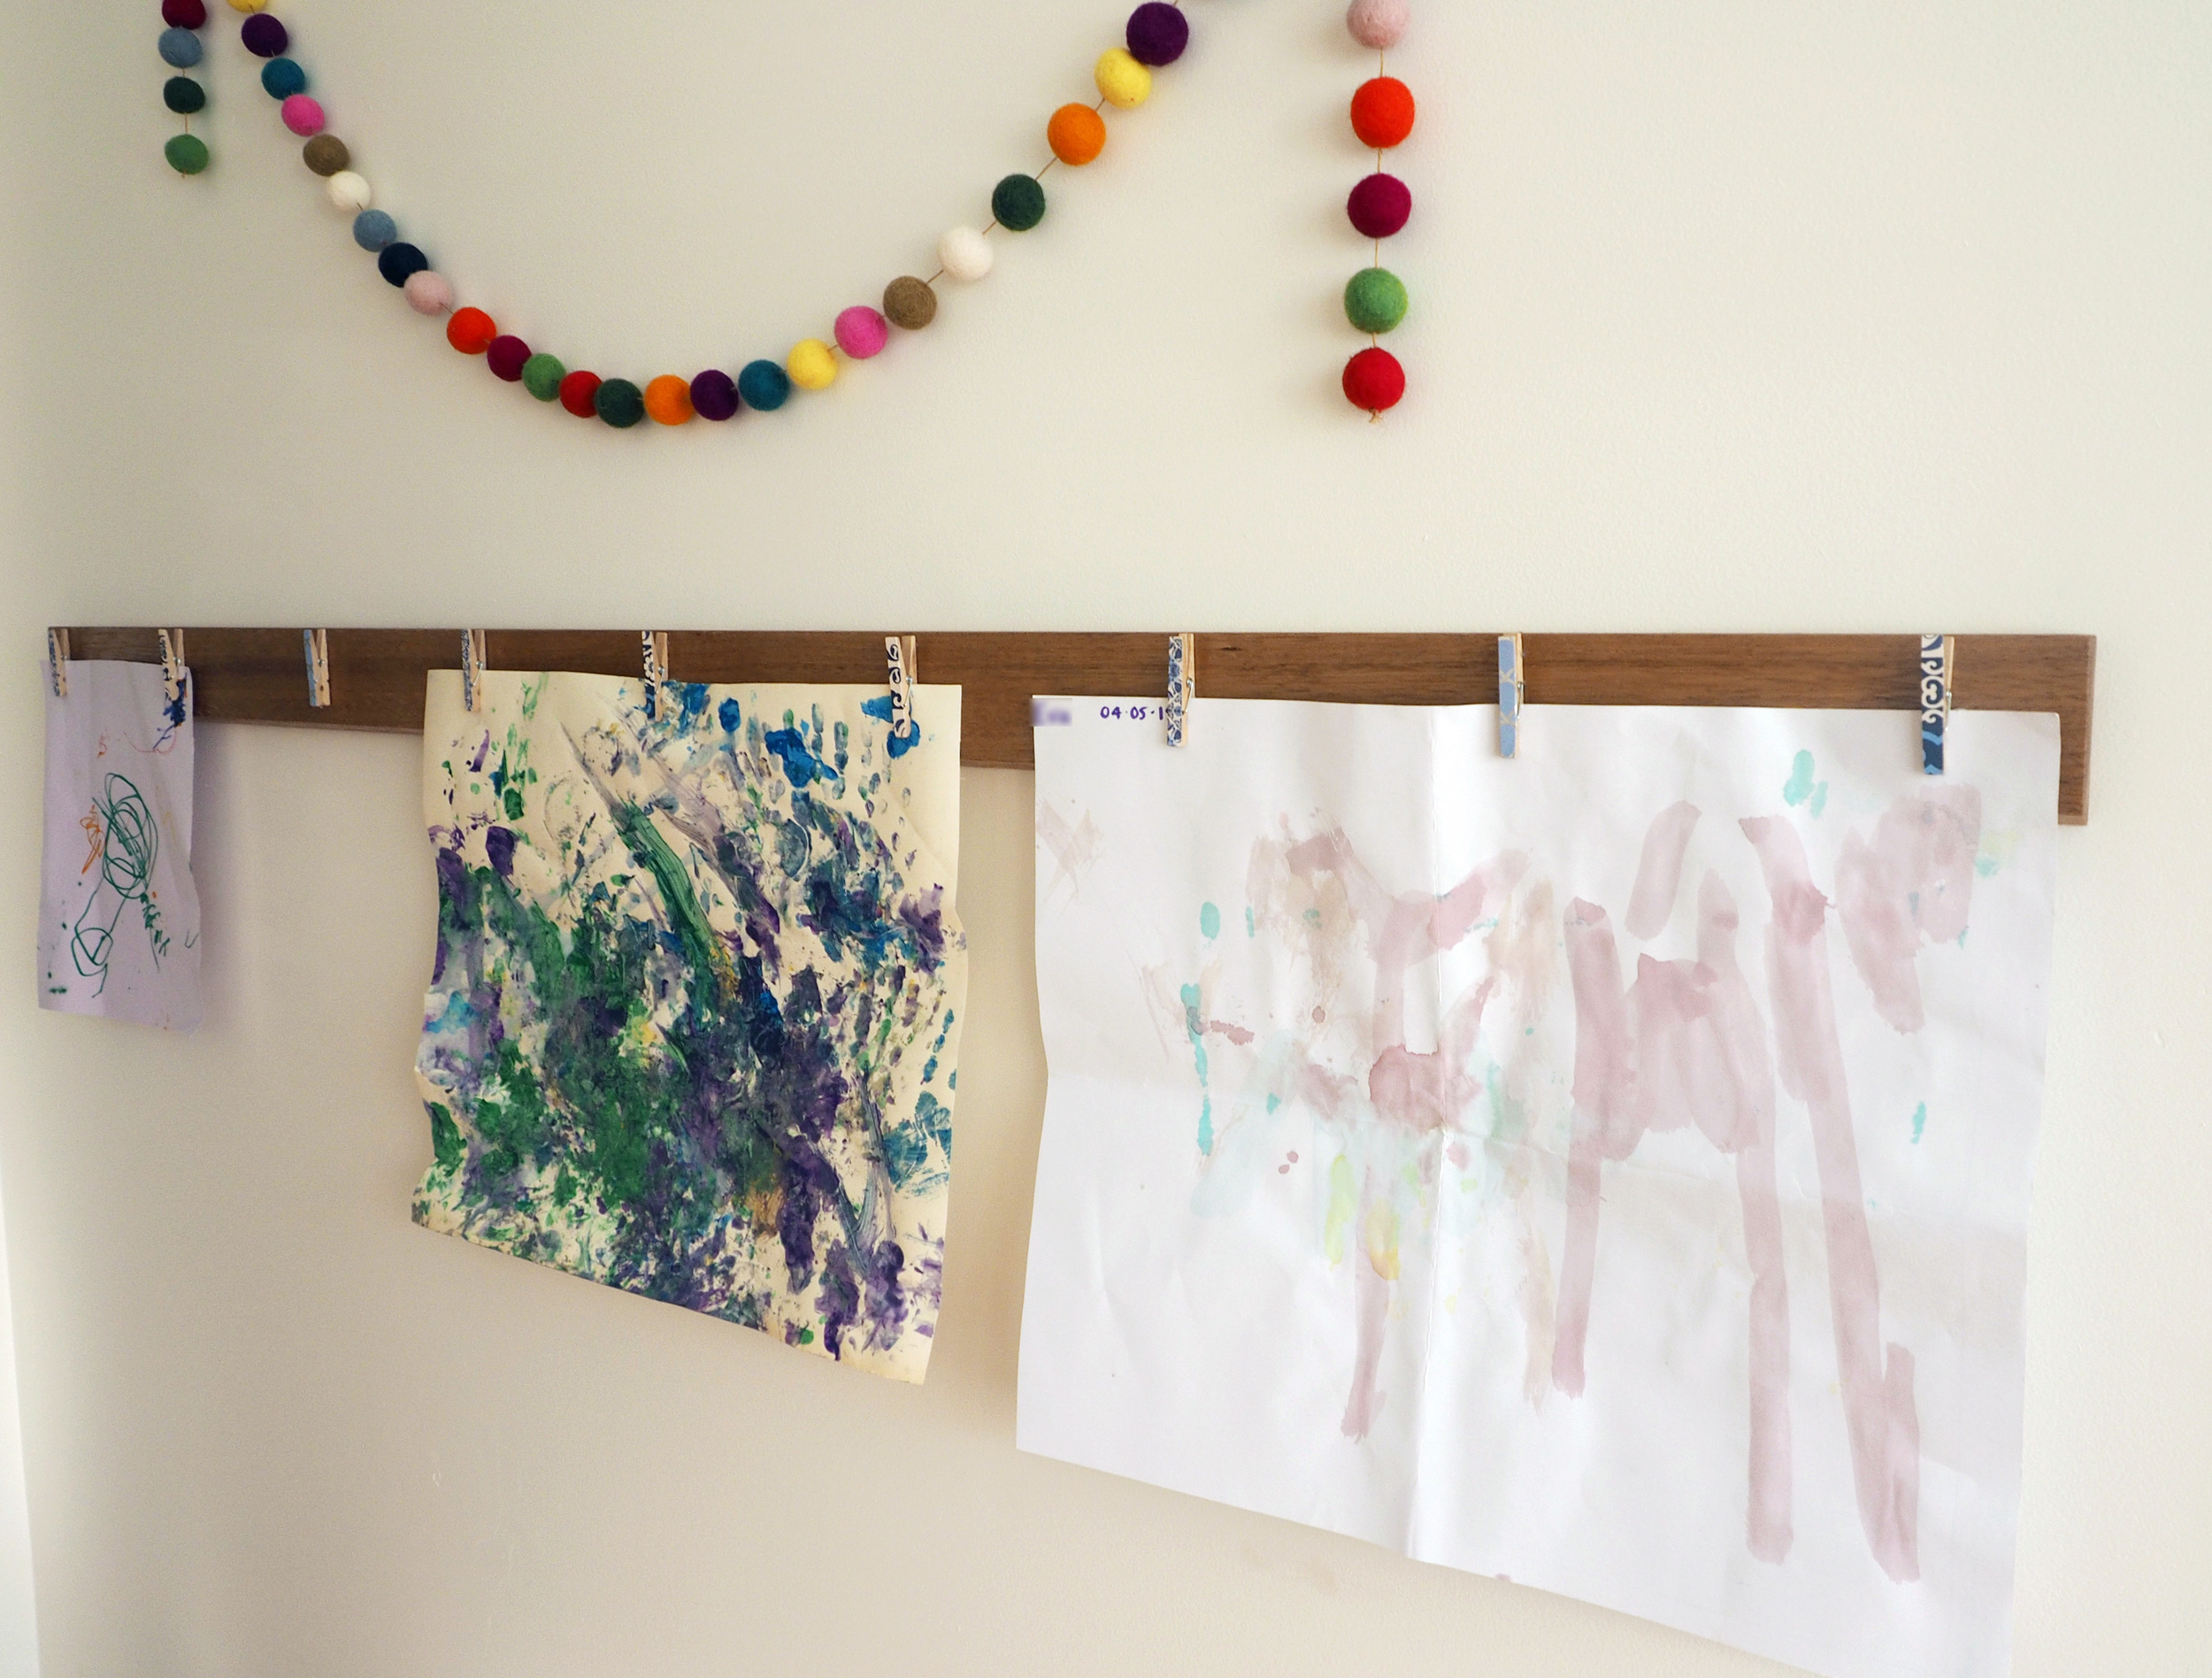 A felt ball garland and child's artwork make a pretty decorative display in a bedroom